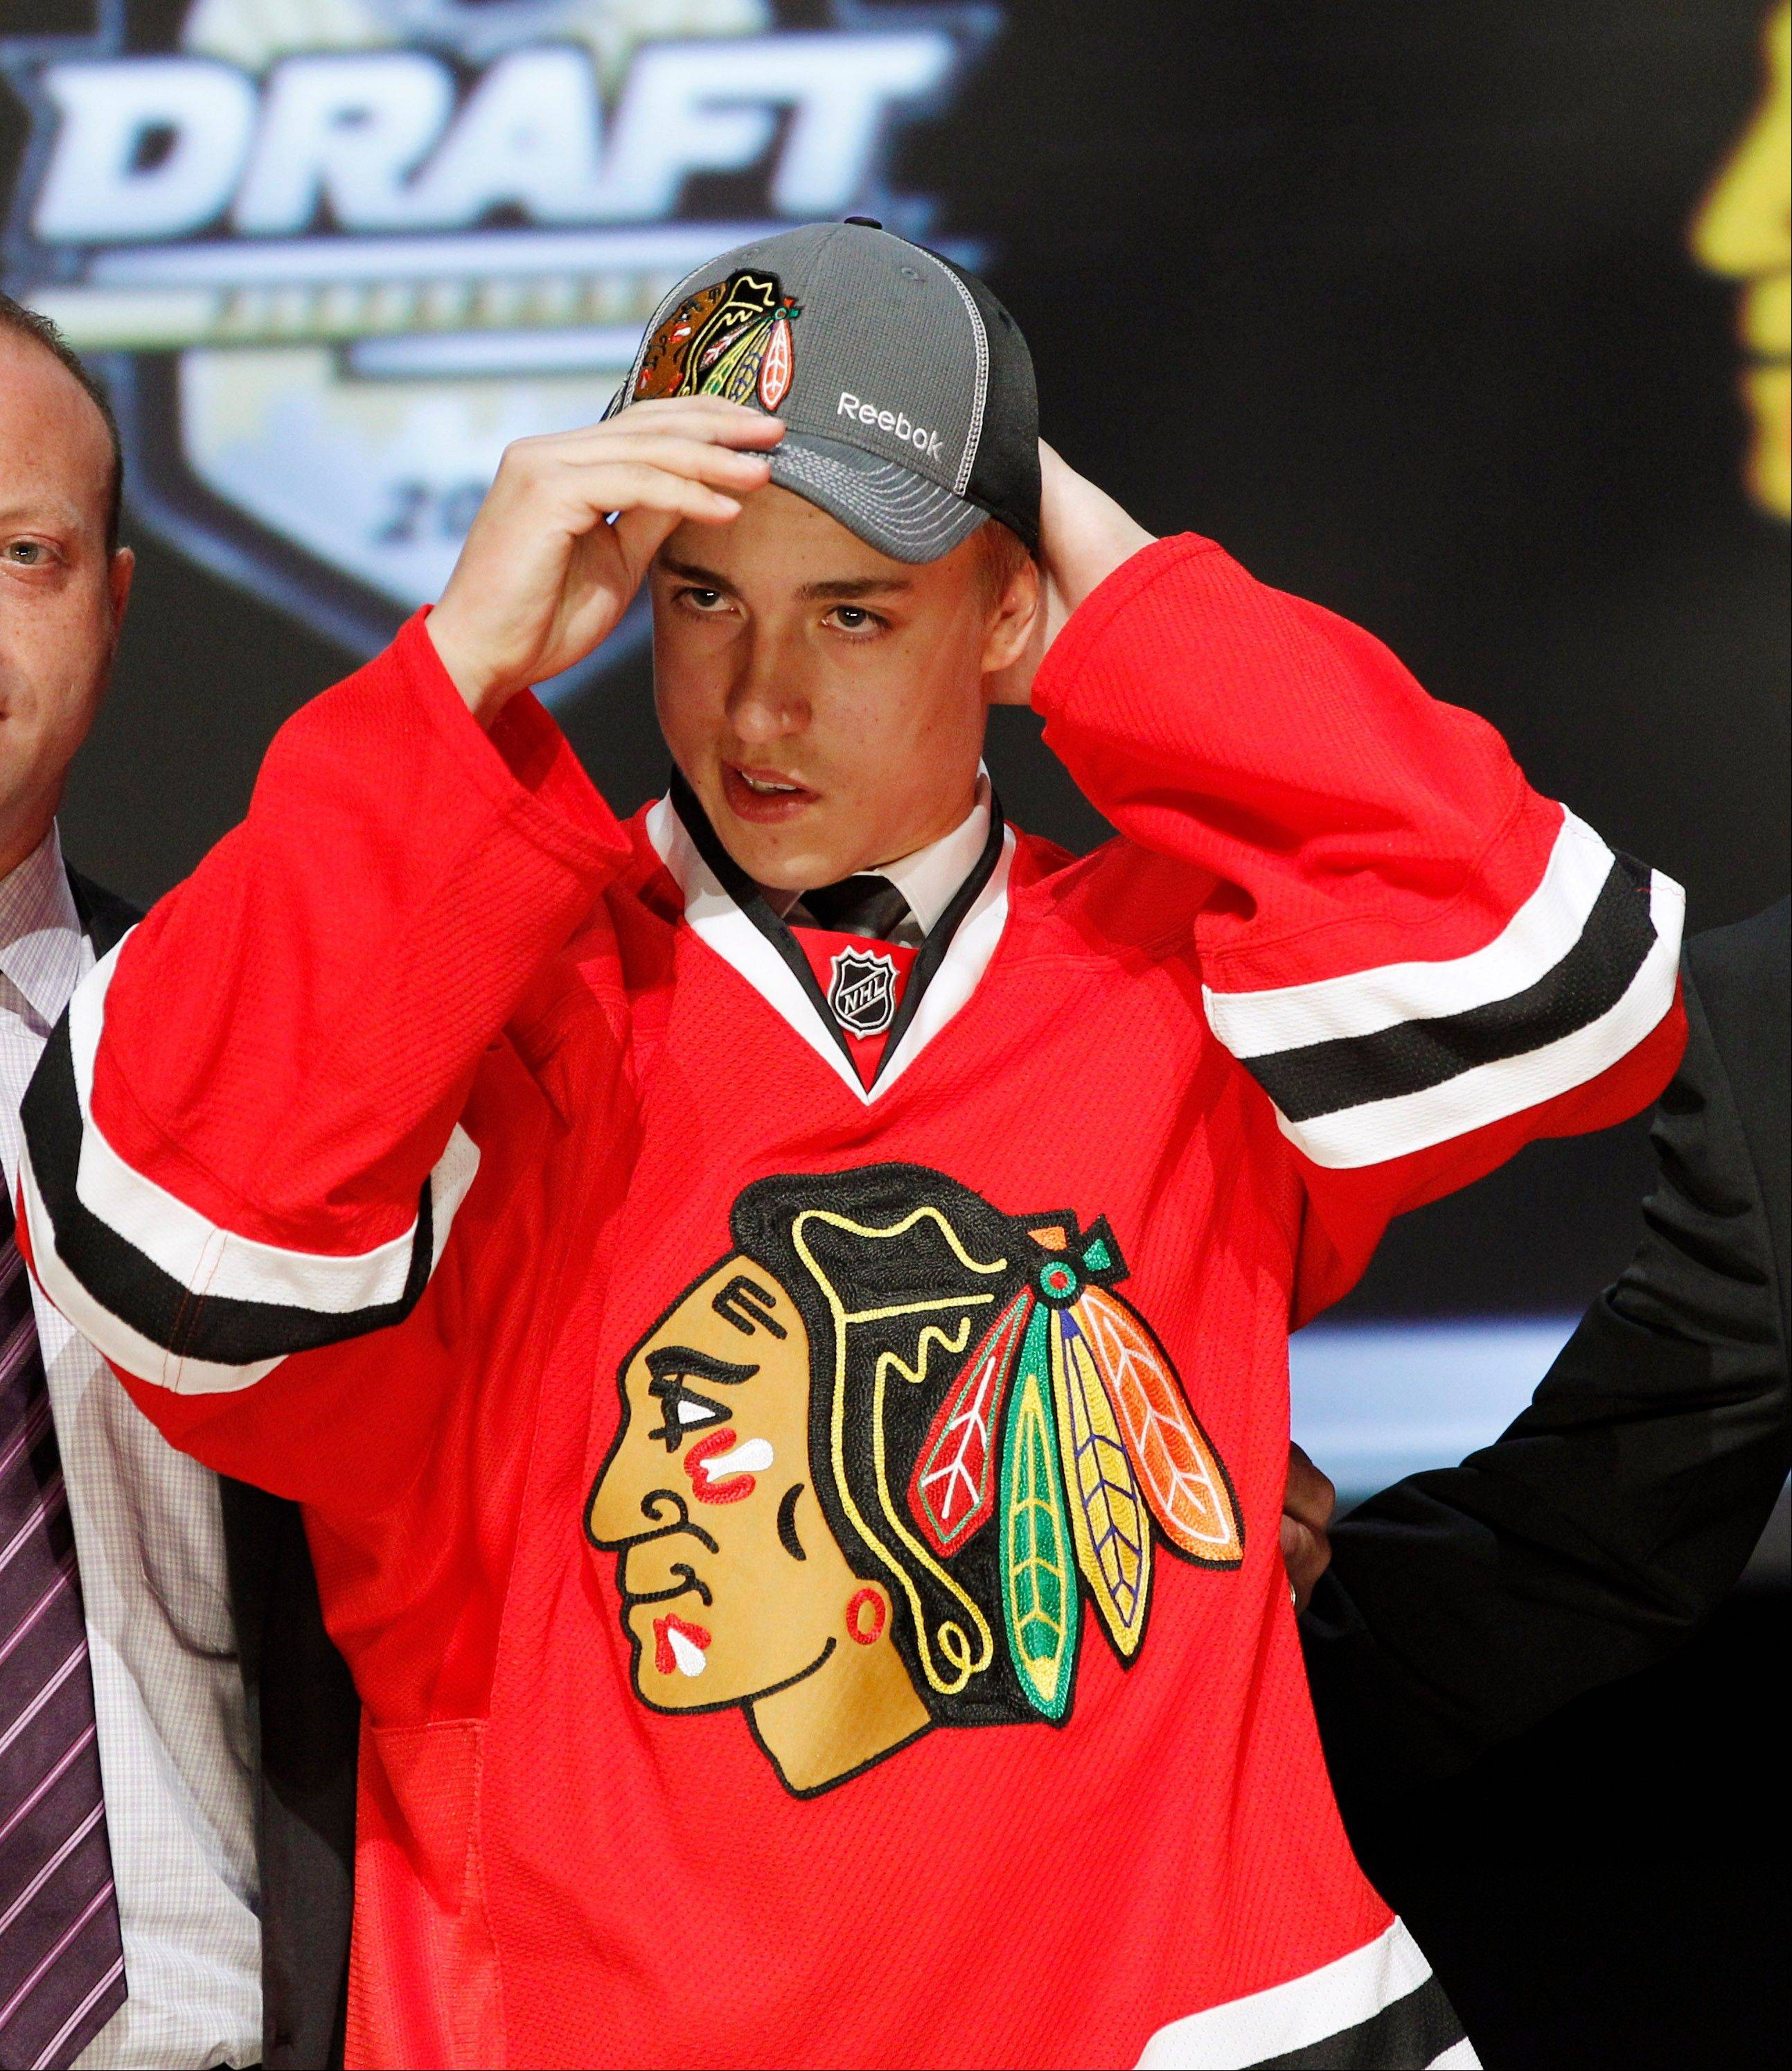 Teuvo Teravainen, a winger from Finland, pulls on a Chicago Blackhawks cap after being chosen 18th overall in the first round of the NHL hockey draft on Friday, June 22, 2012, in Pittsburgh. (AP Photo/Keith Srakocic)